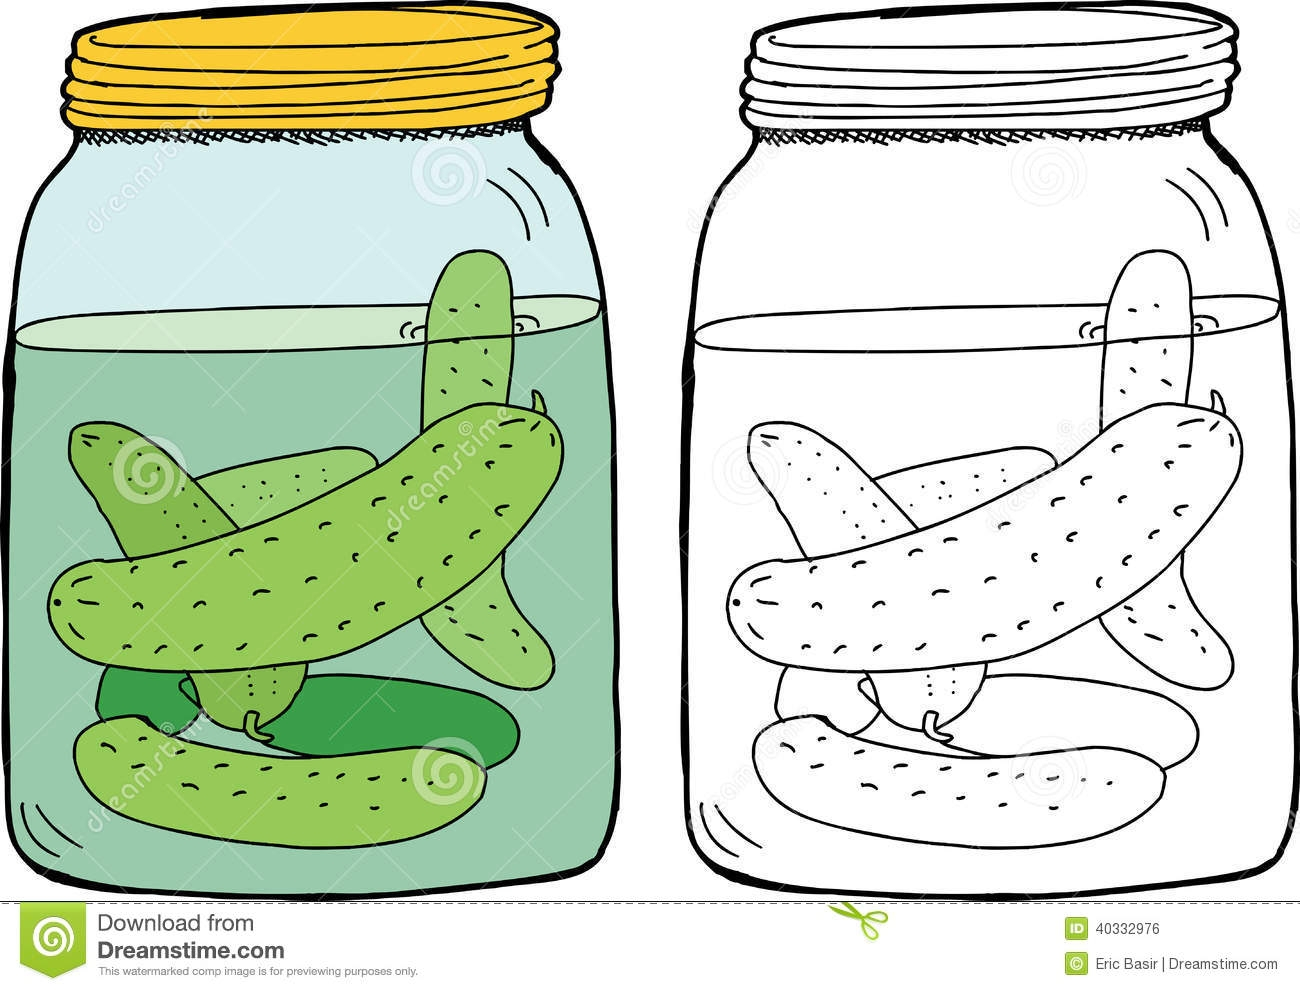 617 Pickle free clipart.